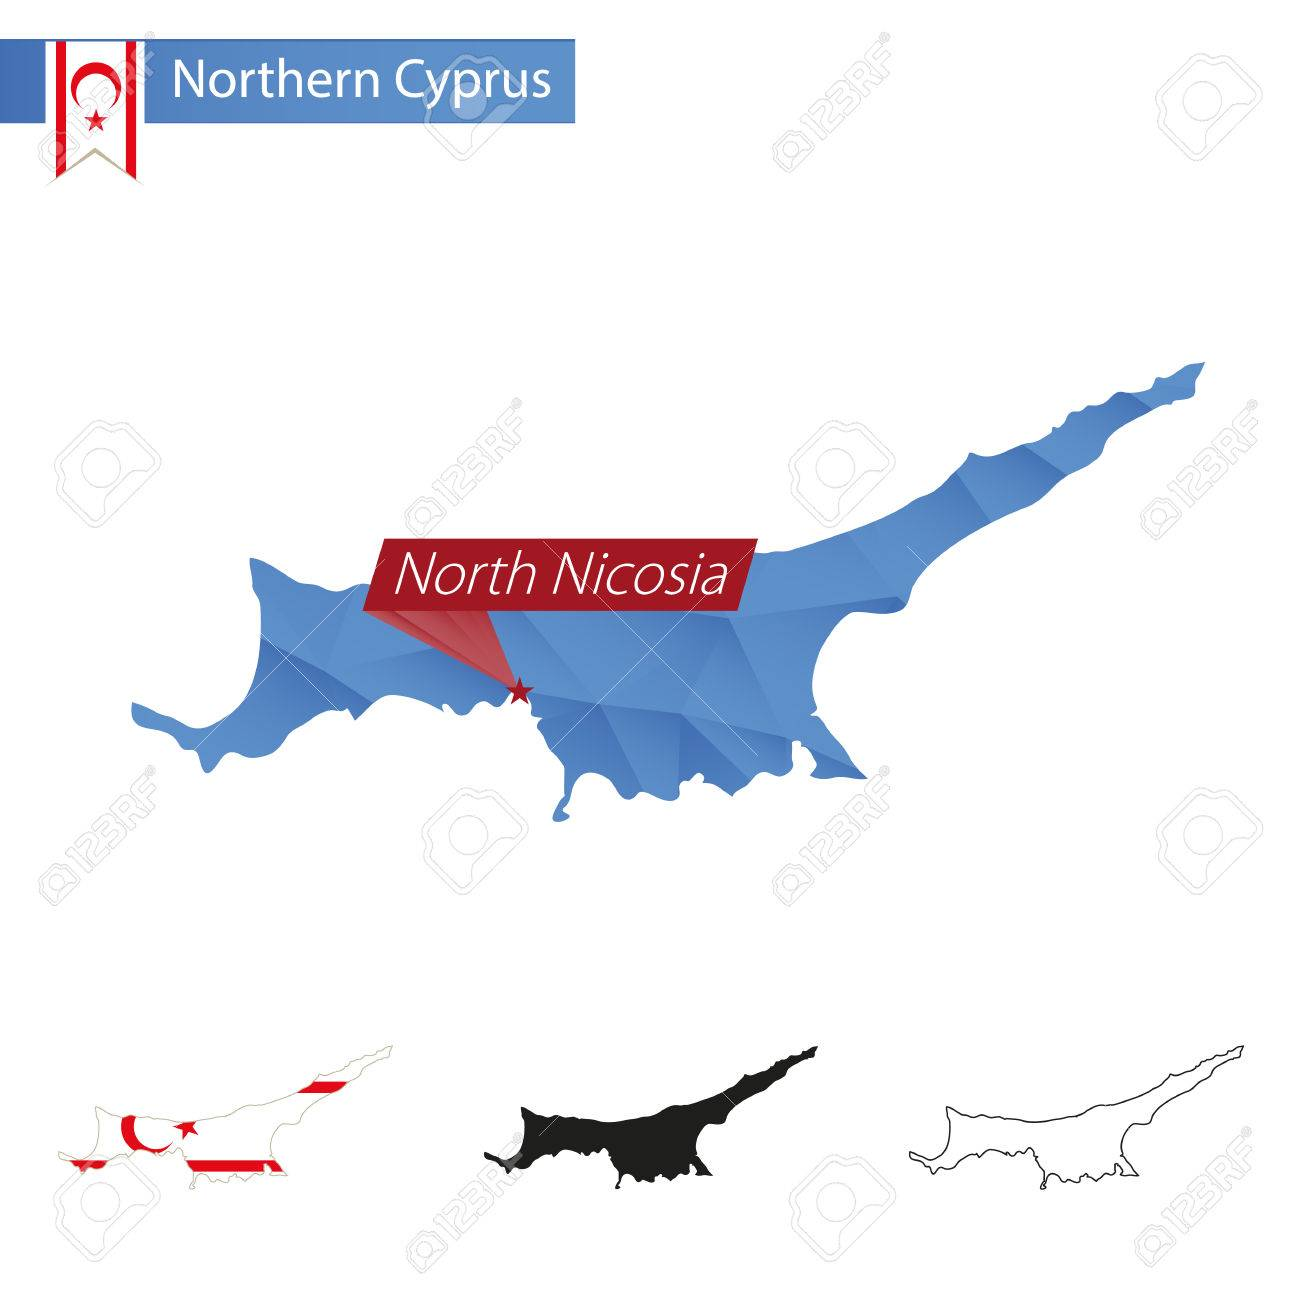 Northern Cyprus Blue Low Poly Map With Capital North Nicosia